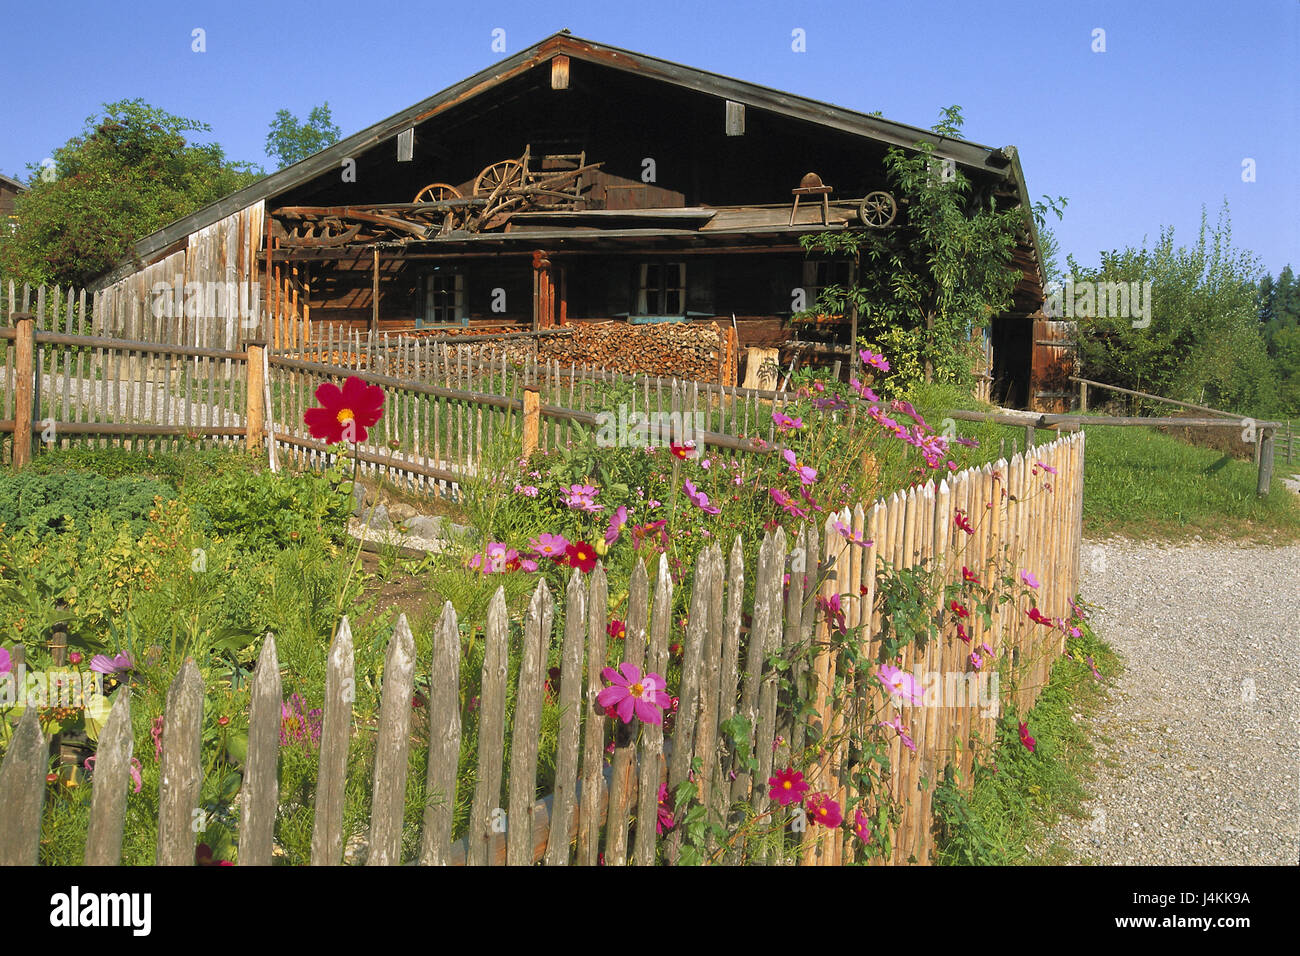 Germany Upper Bavaria Glentleitn Open Air Museum Wooden House Cottage Gardens Summers Europe Farmhouse Residential